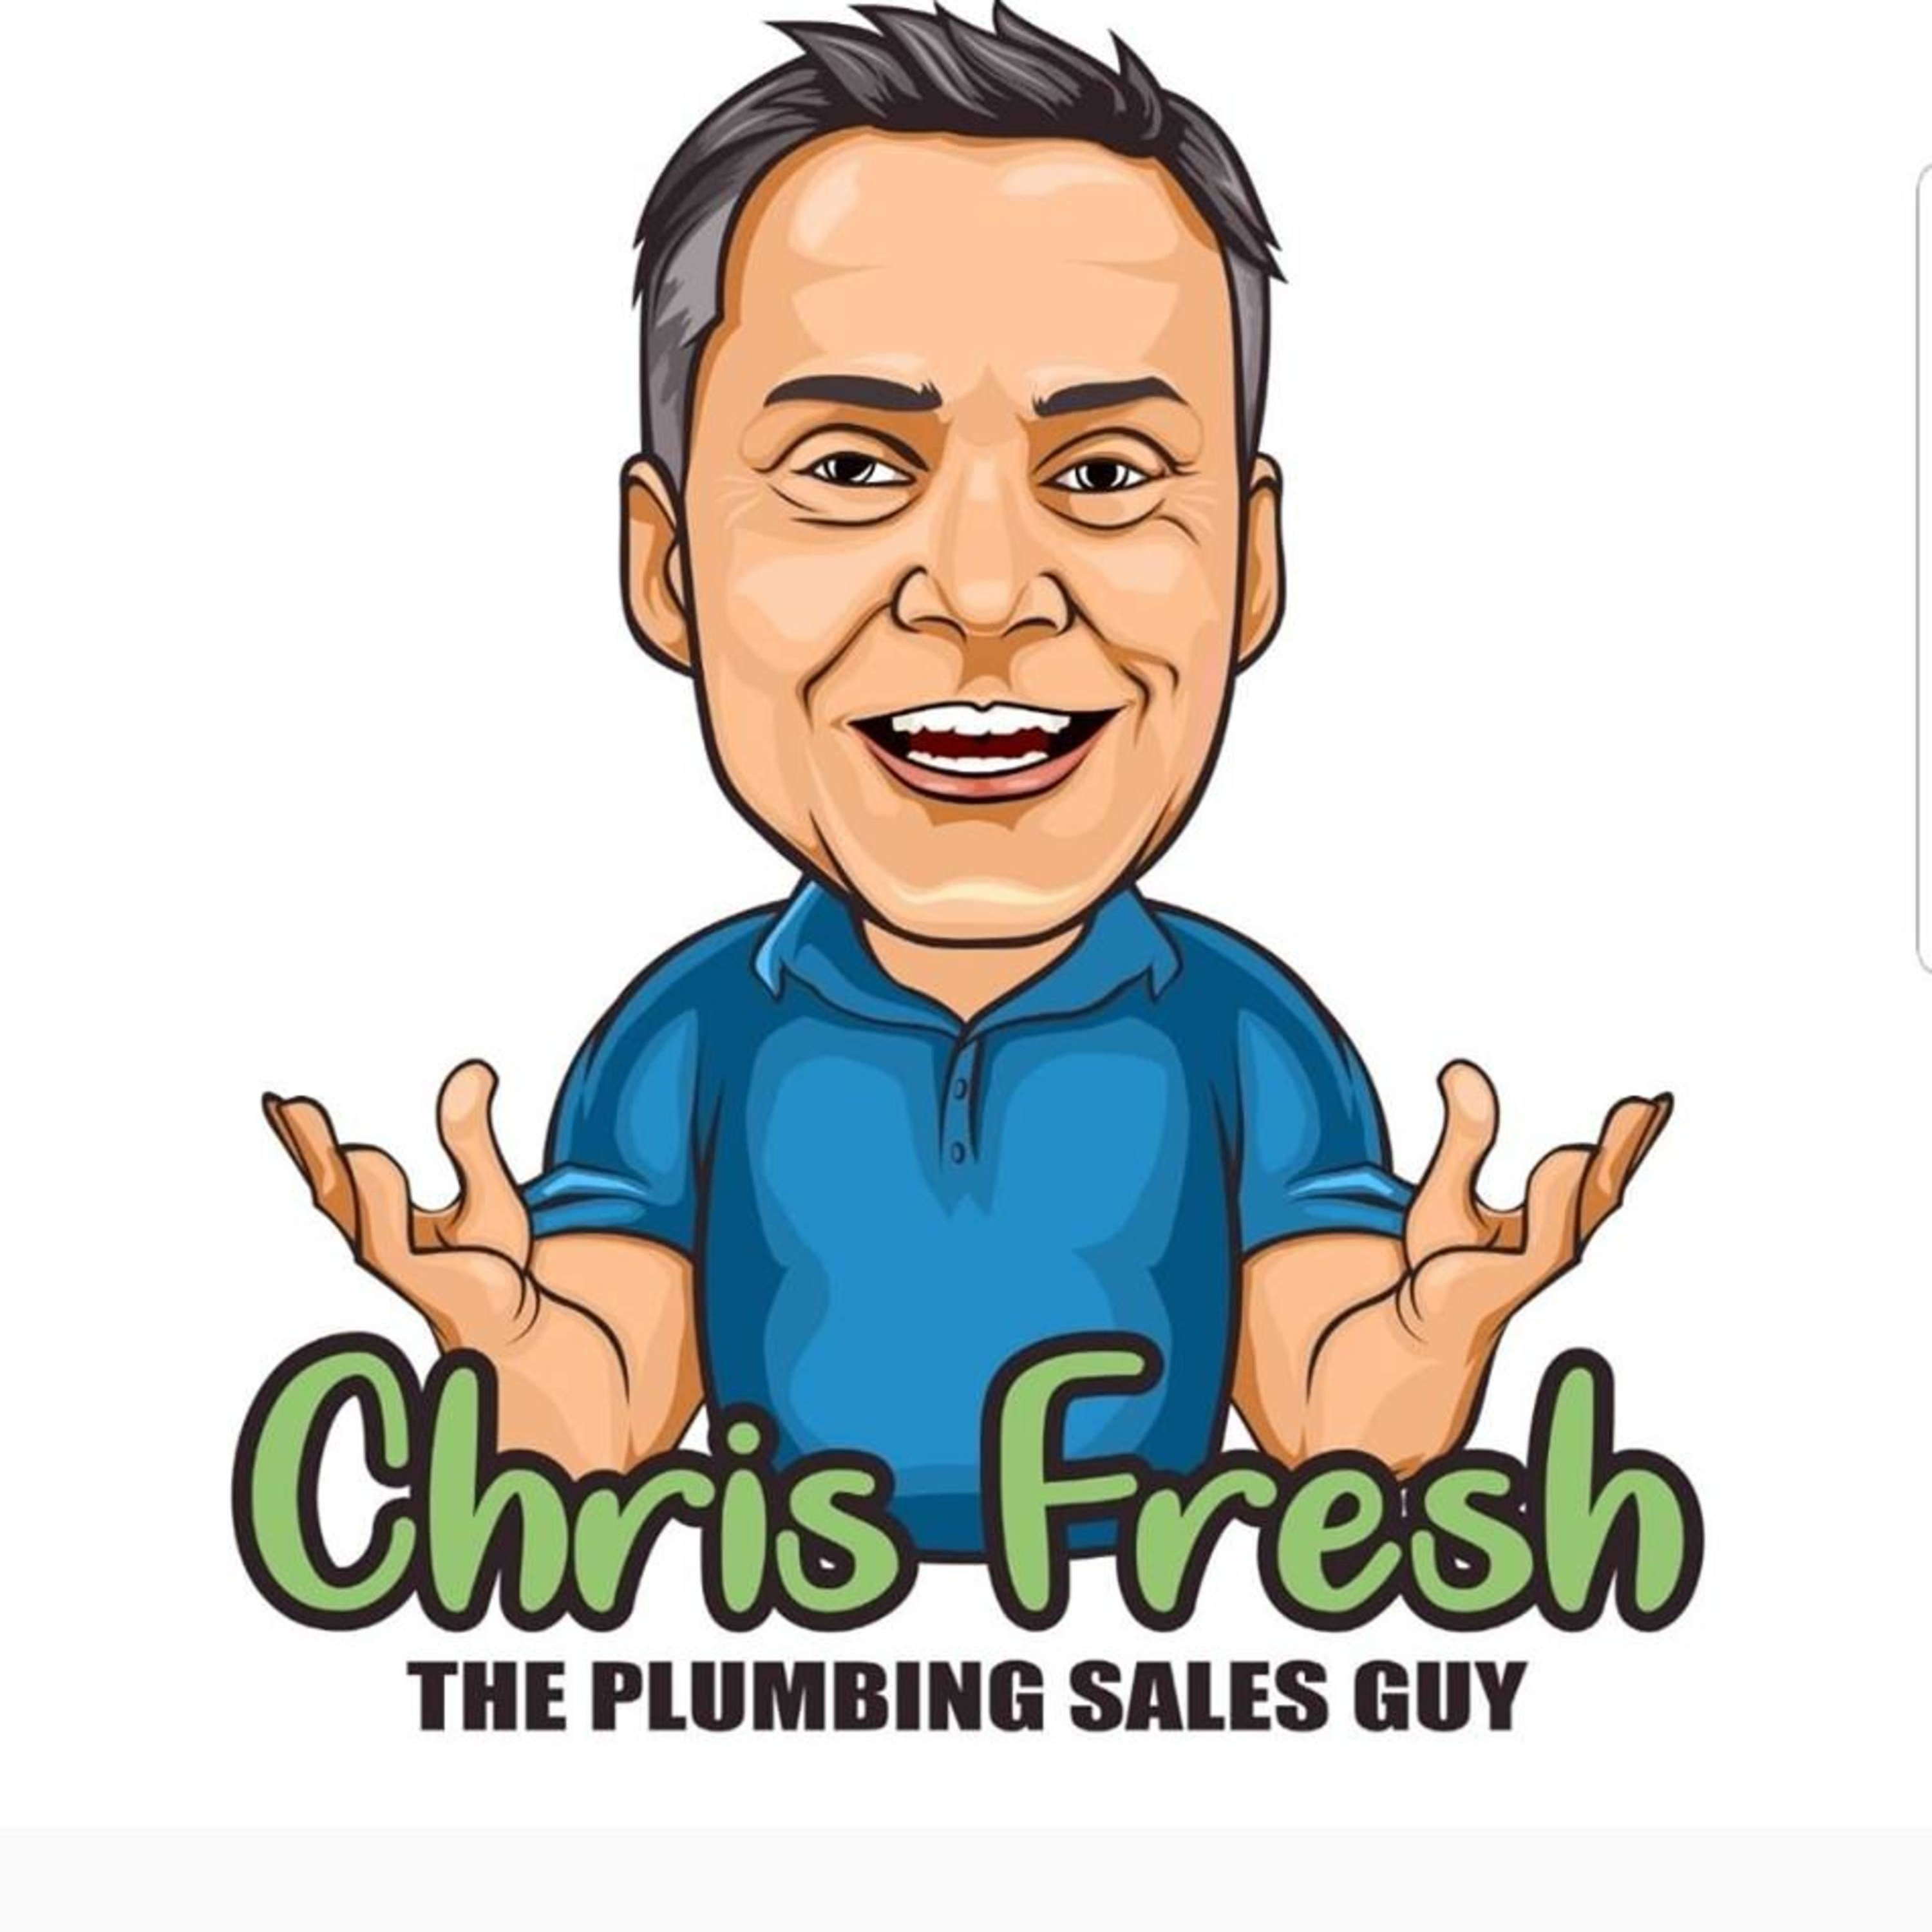 Episode 121: Another Reason A Plumber Has Value!